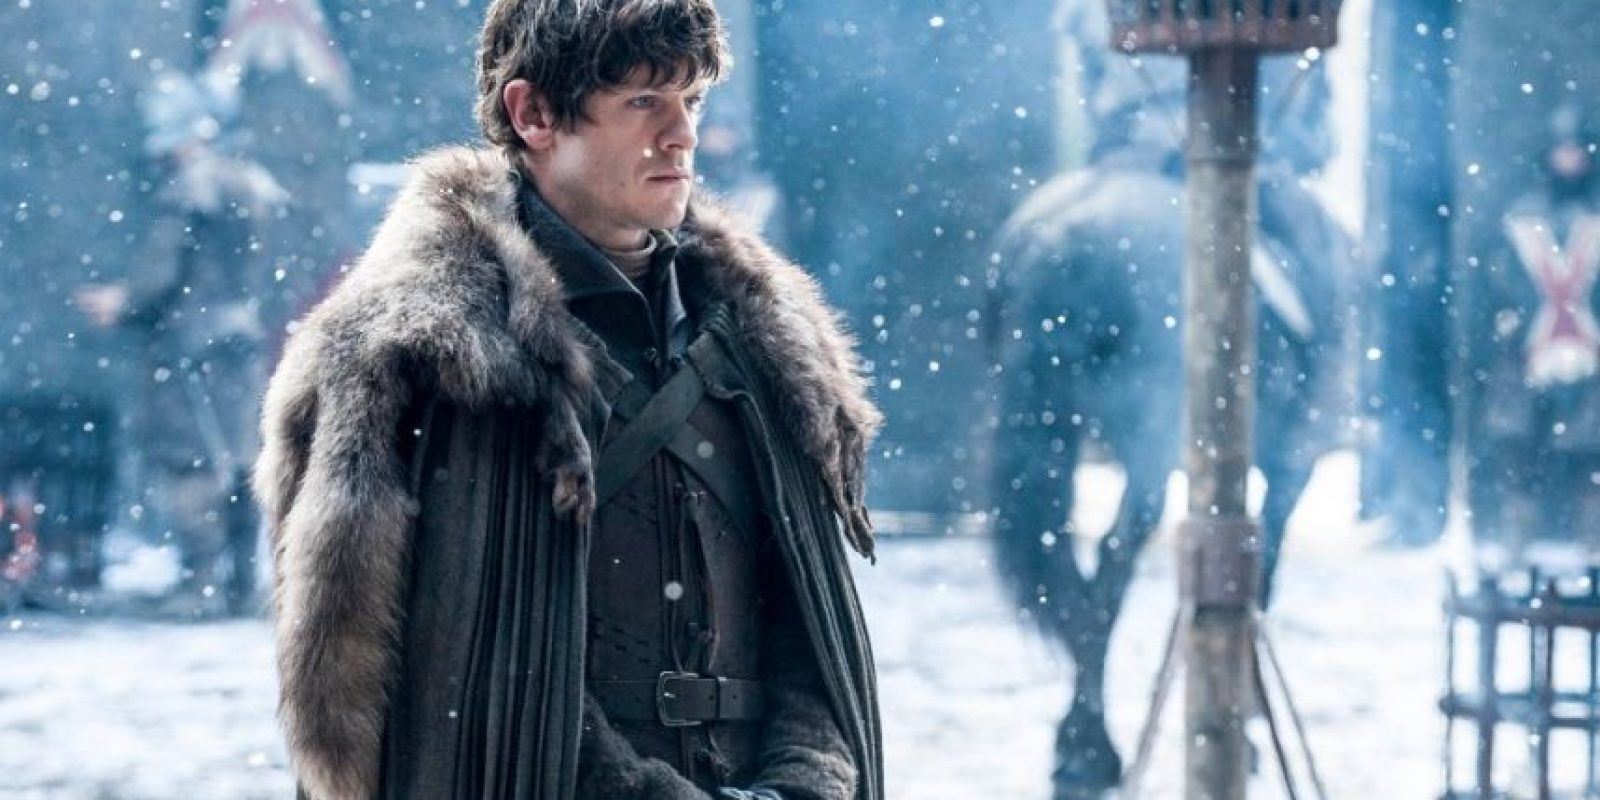 Ramsay Bolton, en medio de la guerra. Foto: Vía Facebook/Game of Thrones